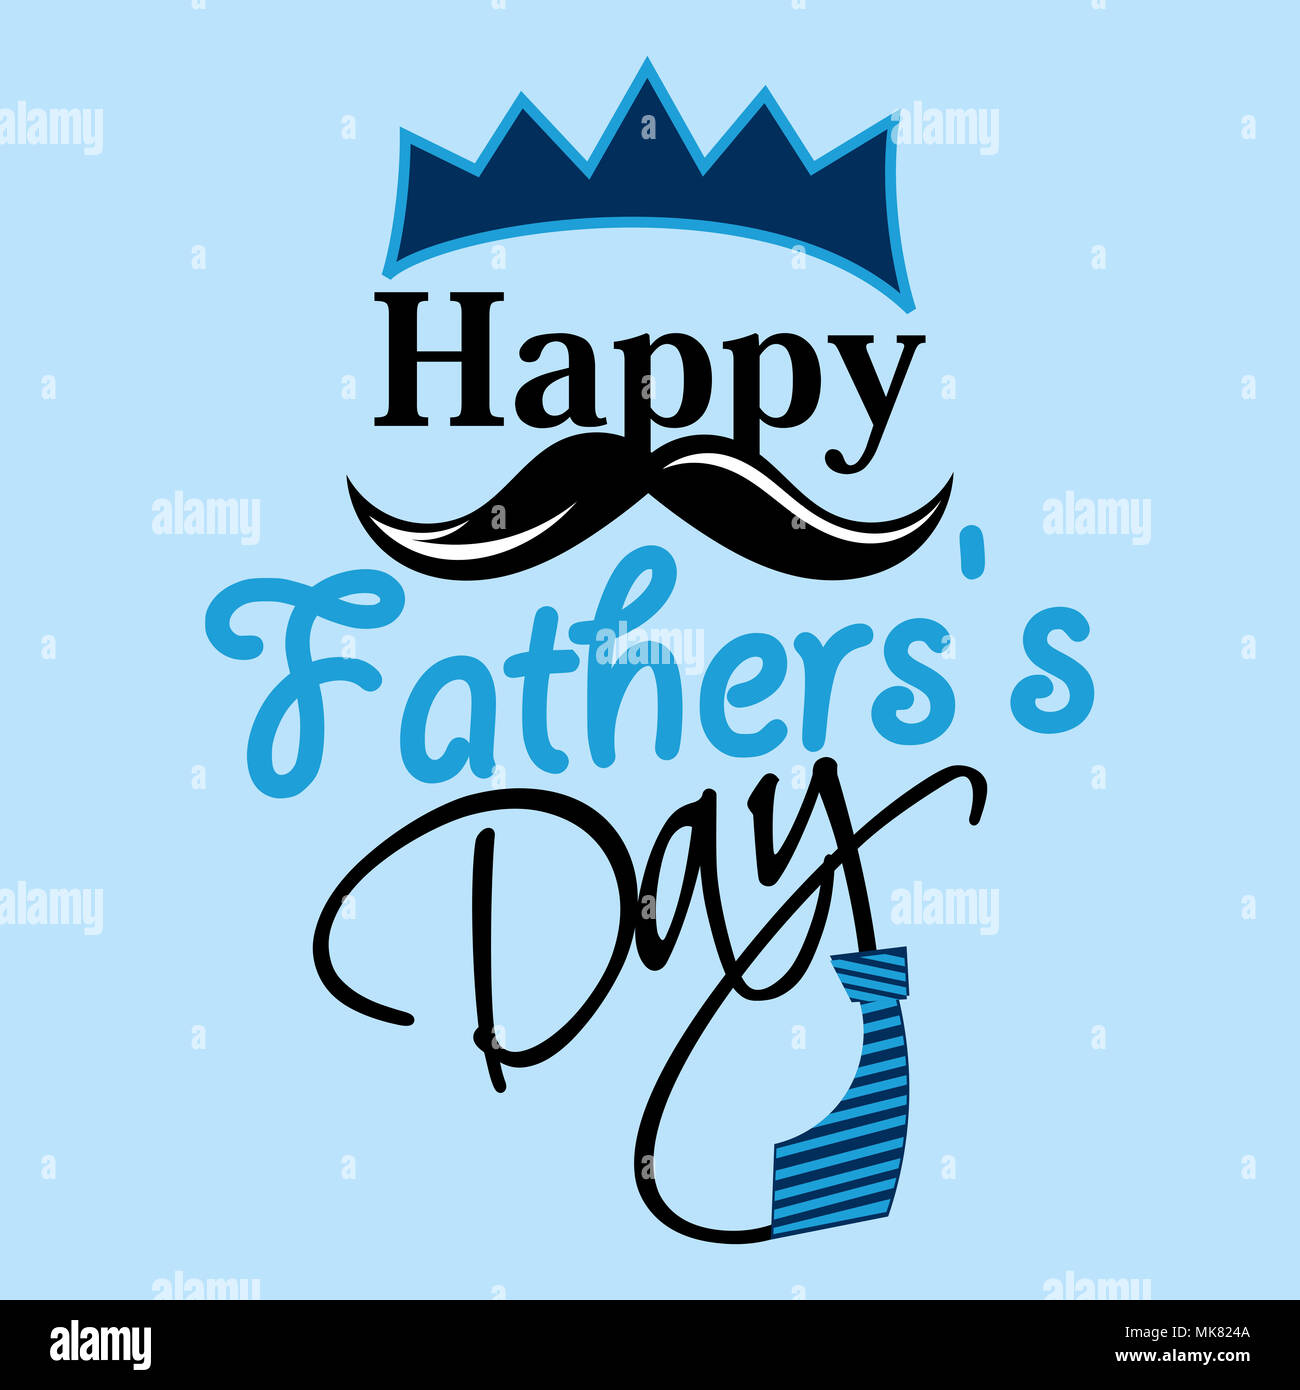 Happy fathers day greeting card stock photo 183959450 alamy happy fathers day greeting card m4hsunfo